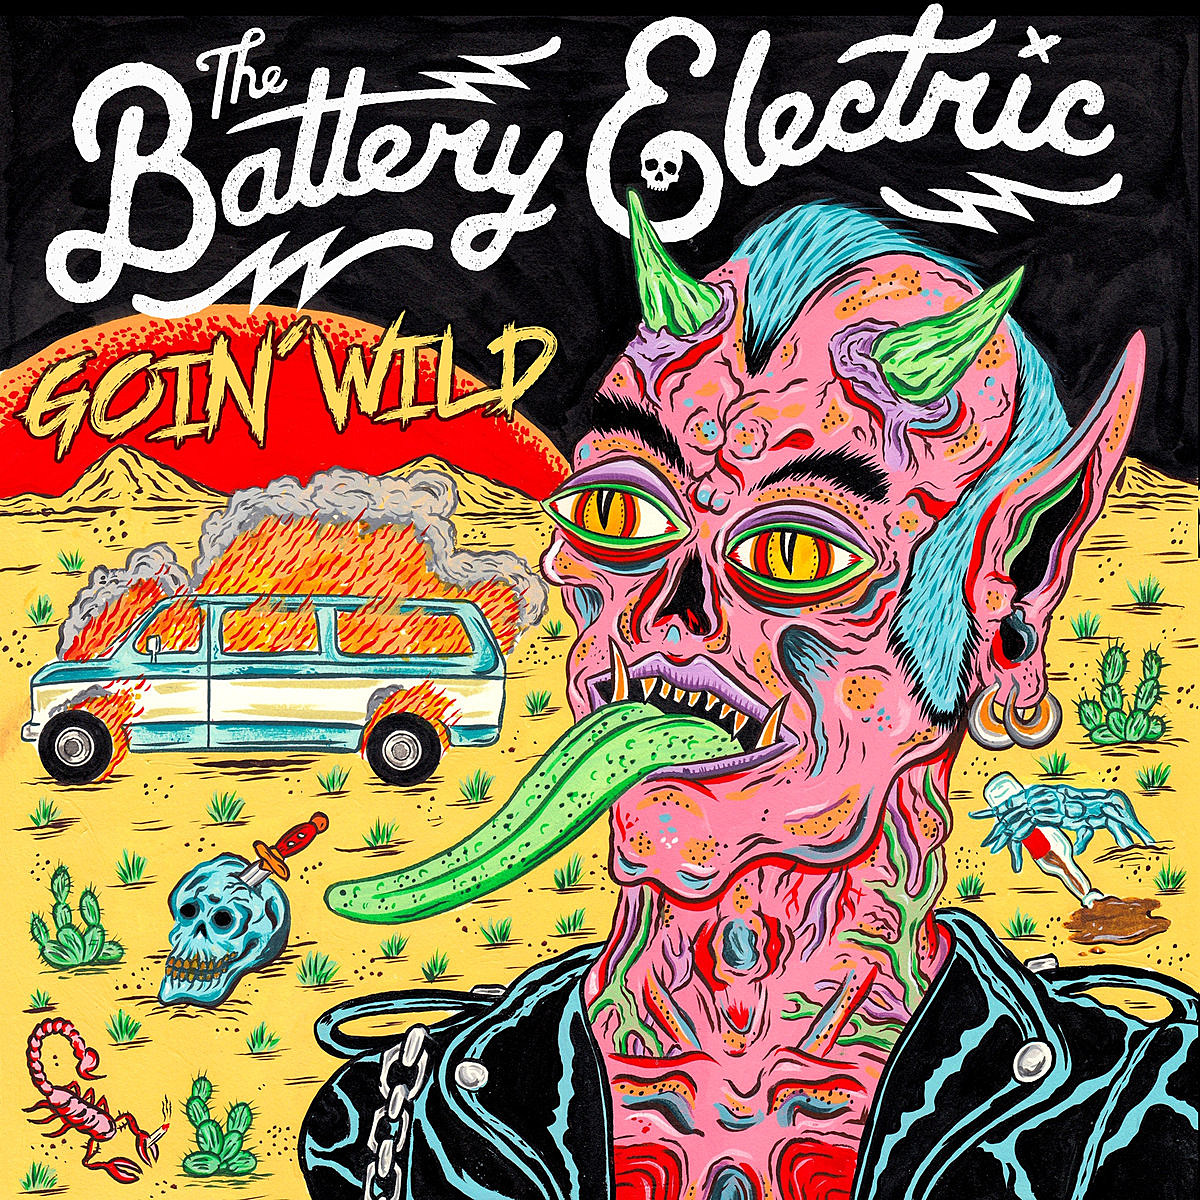 Battery Electric Goin' Wild